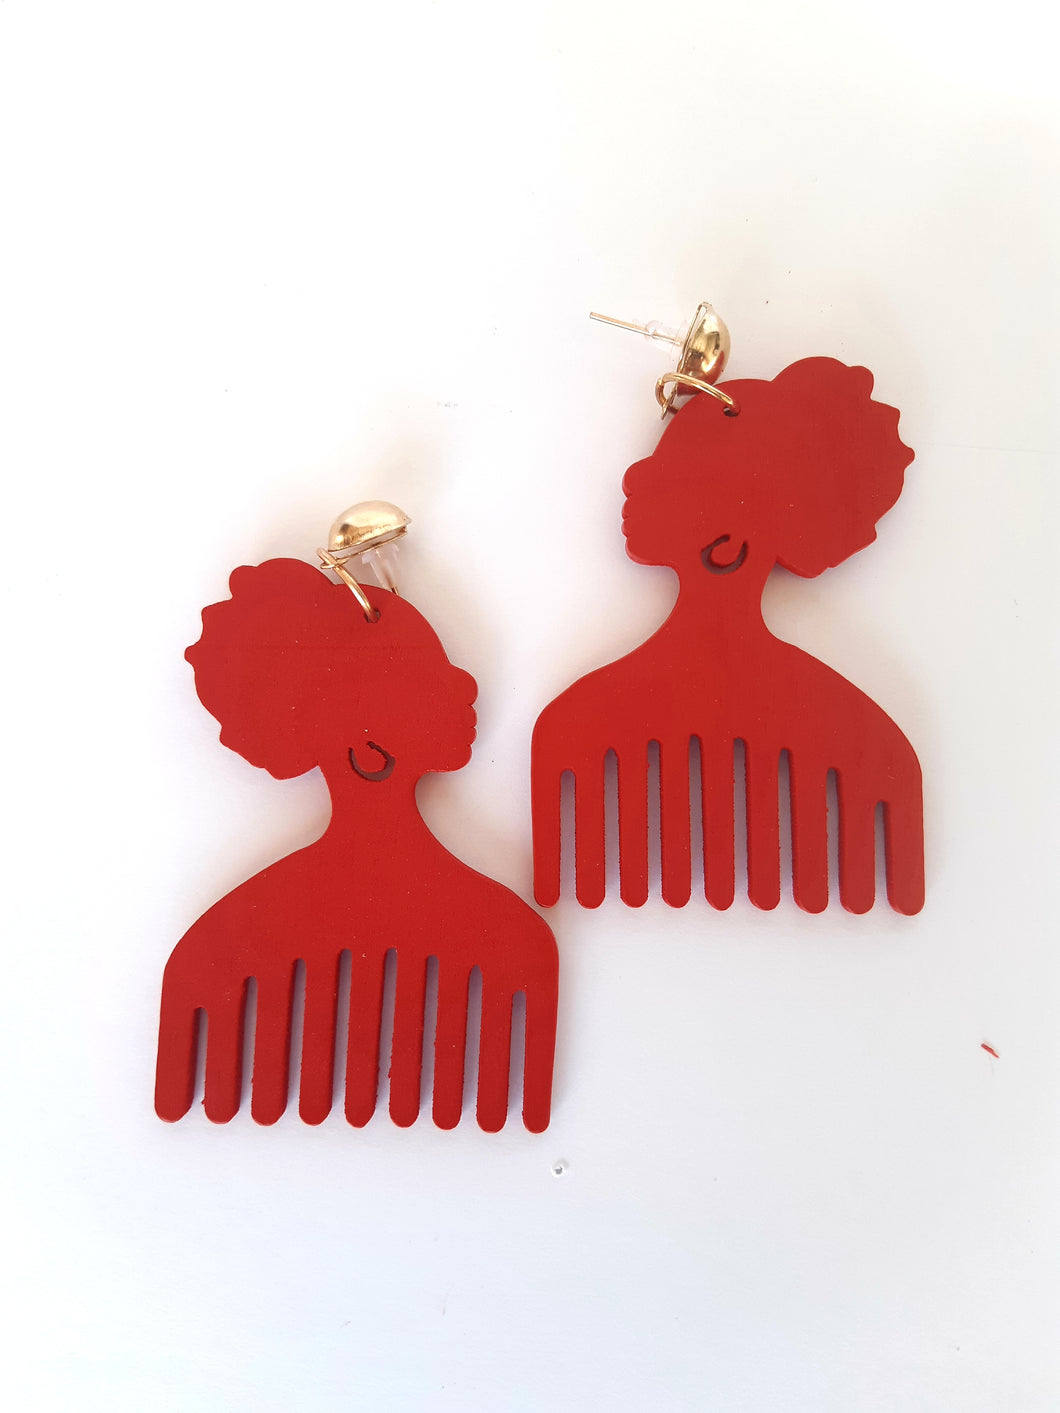 African Wooden Comb Earrings